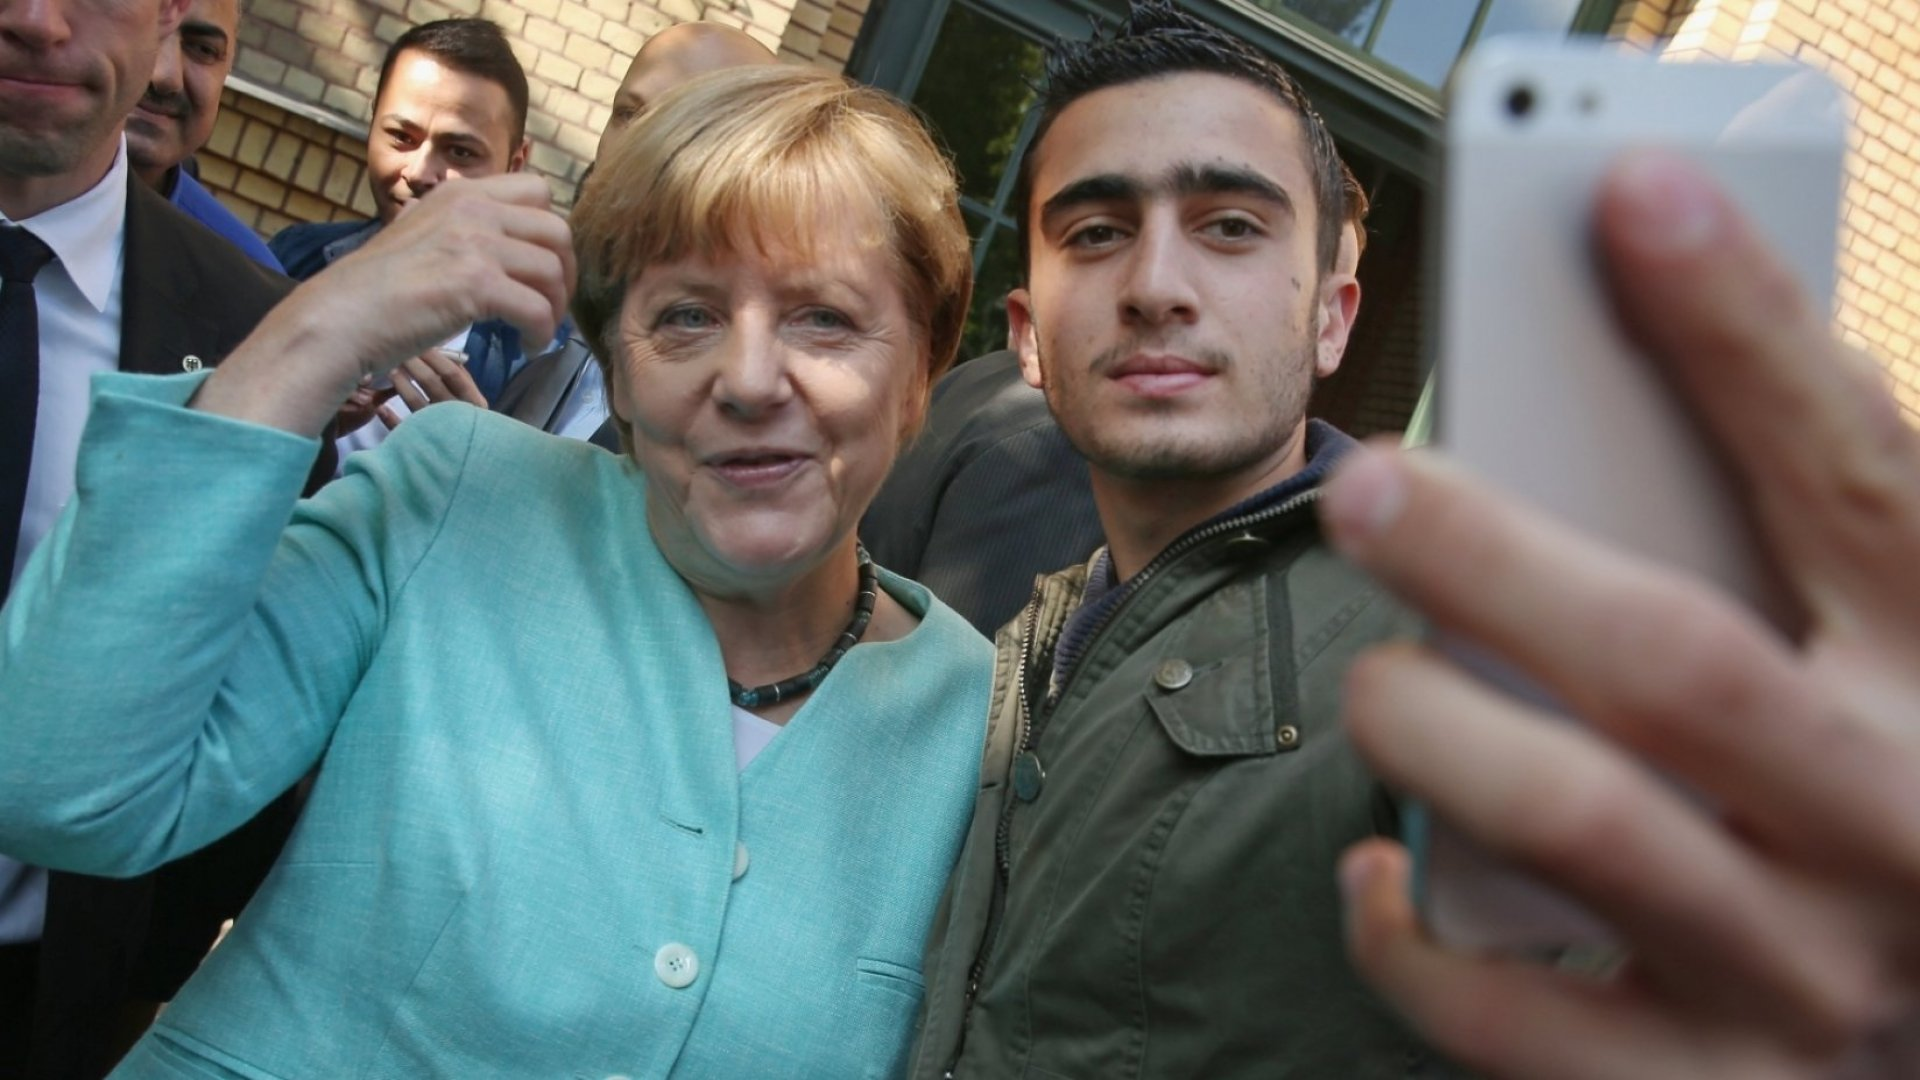 The Leadership Qualities That Made Angela Merkel 'Time' Magazine's Person of the Year